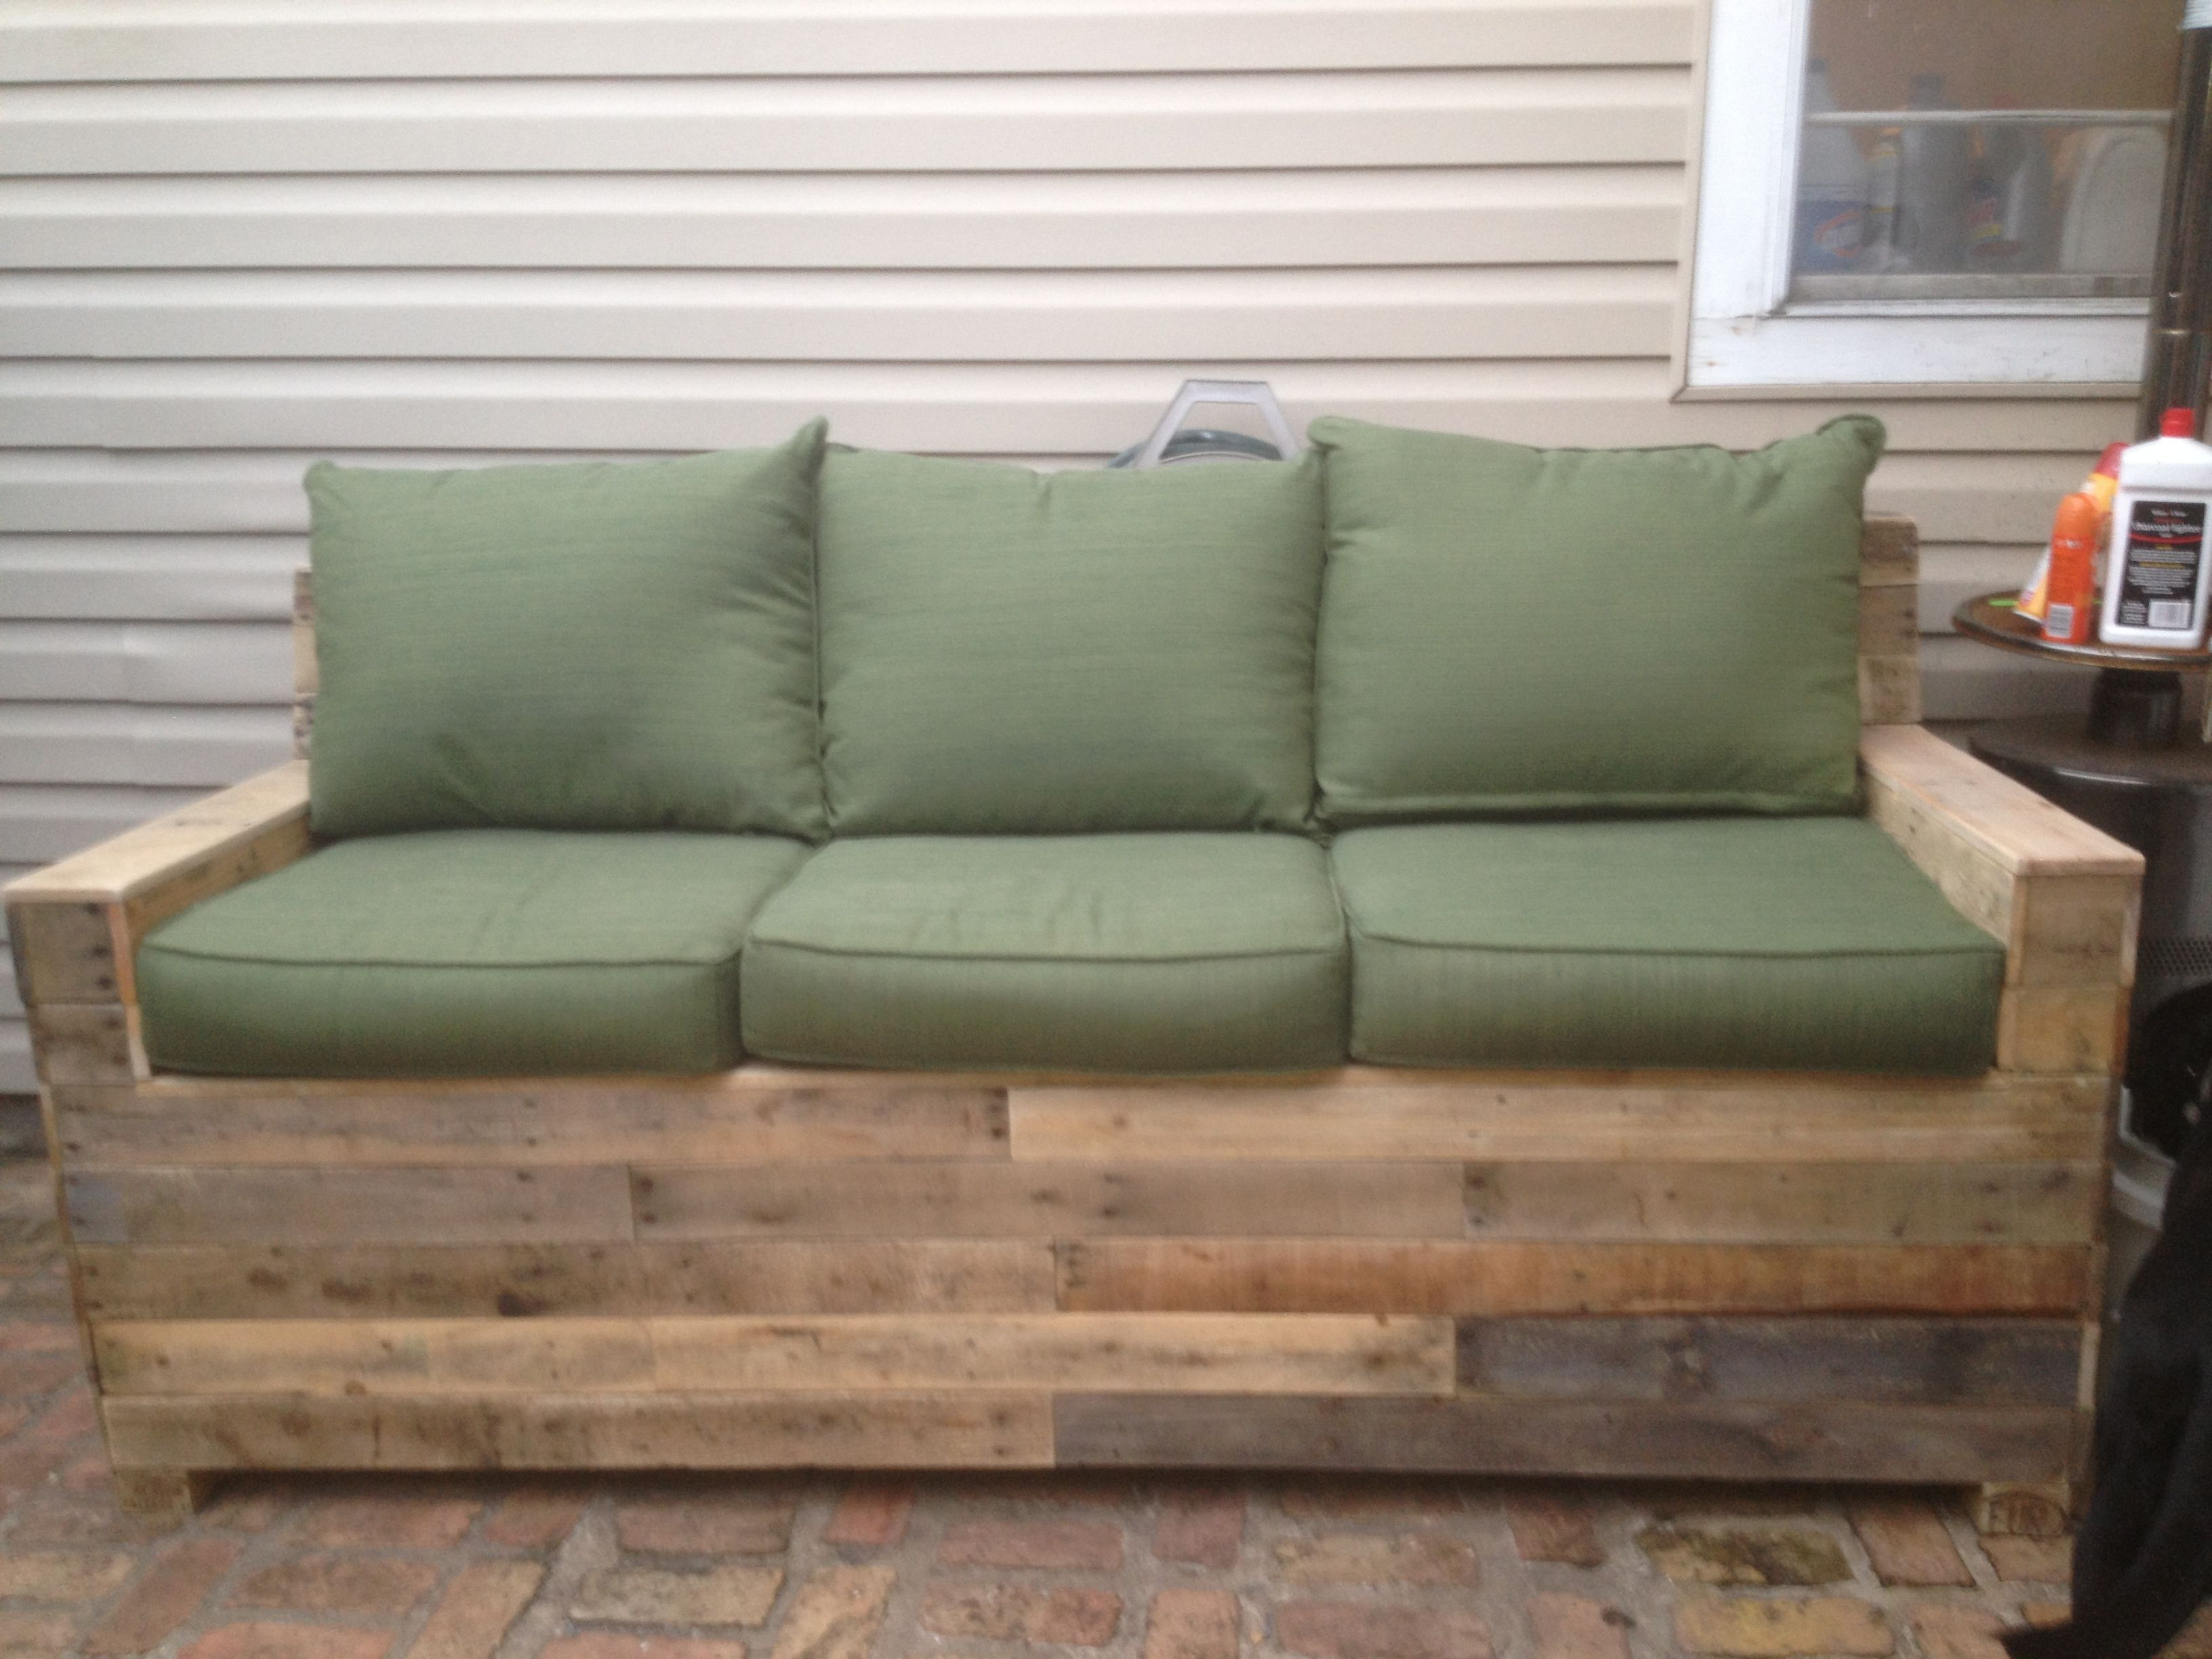 Pallet Sofa For Sale $600